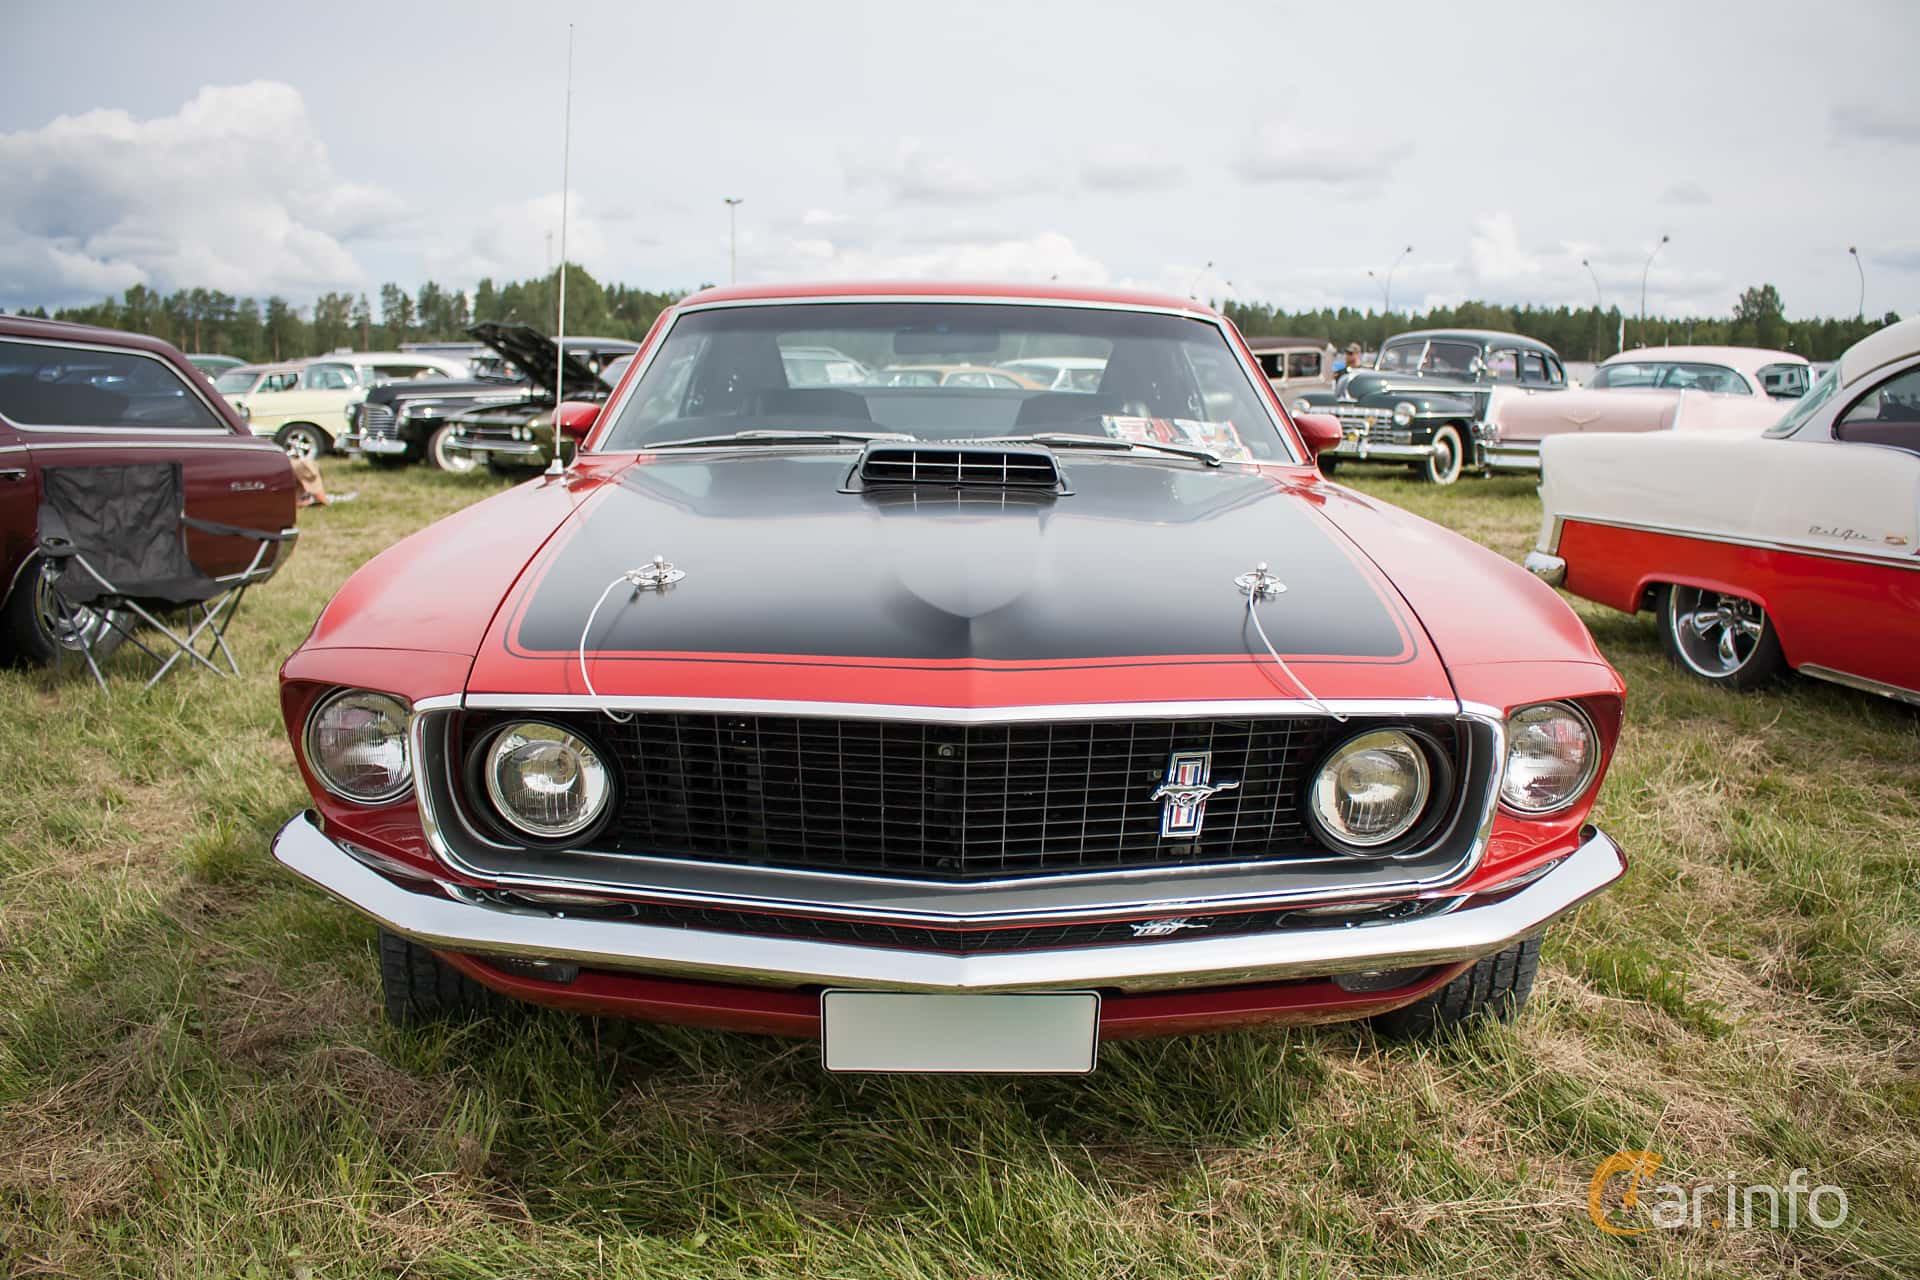 Ford Mustang Mach I 5.8 V8 Automatic, 254hp, 1969 at Classic Car Week 2015